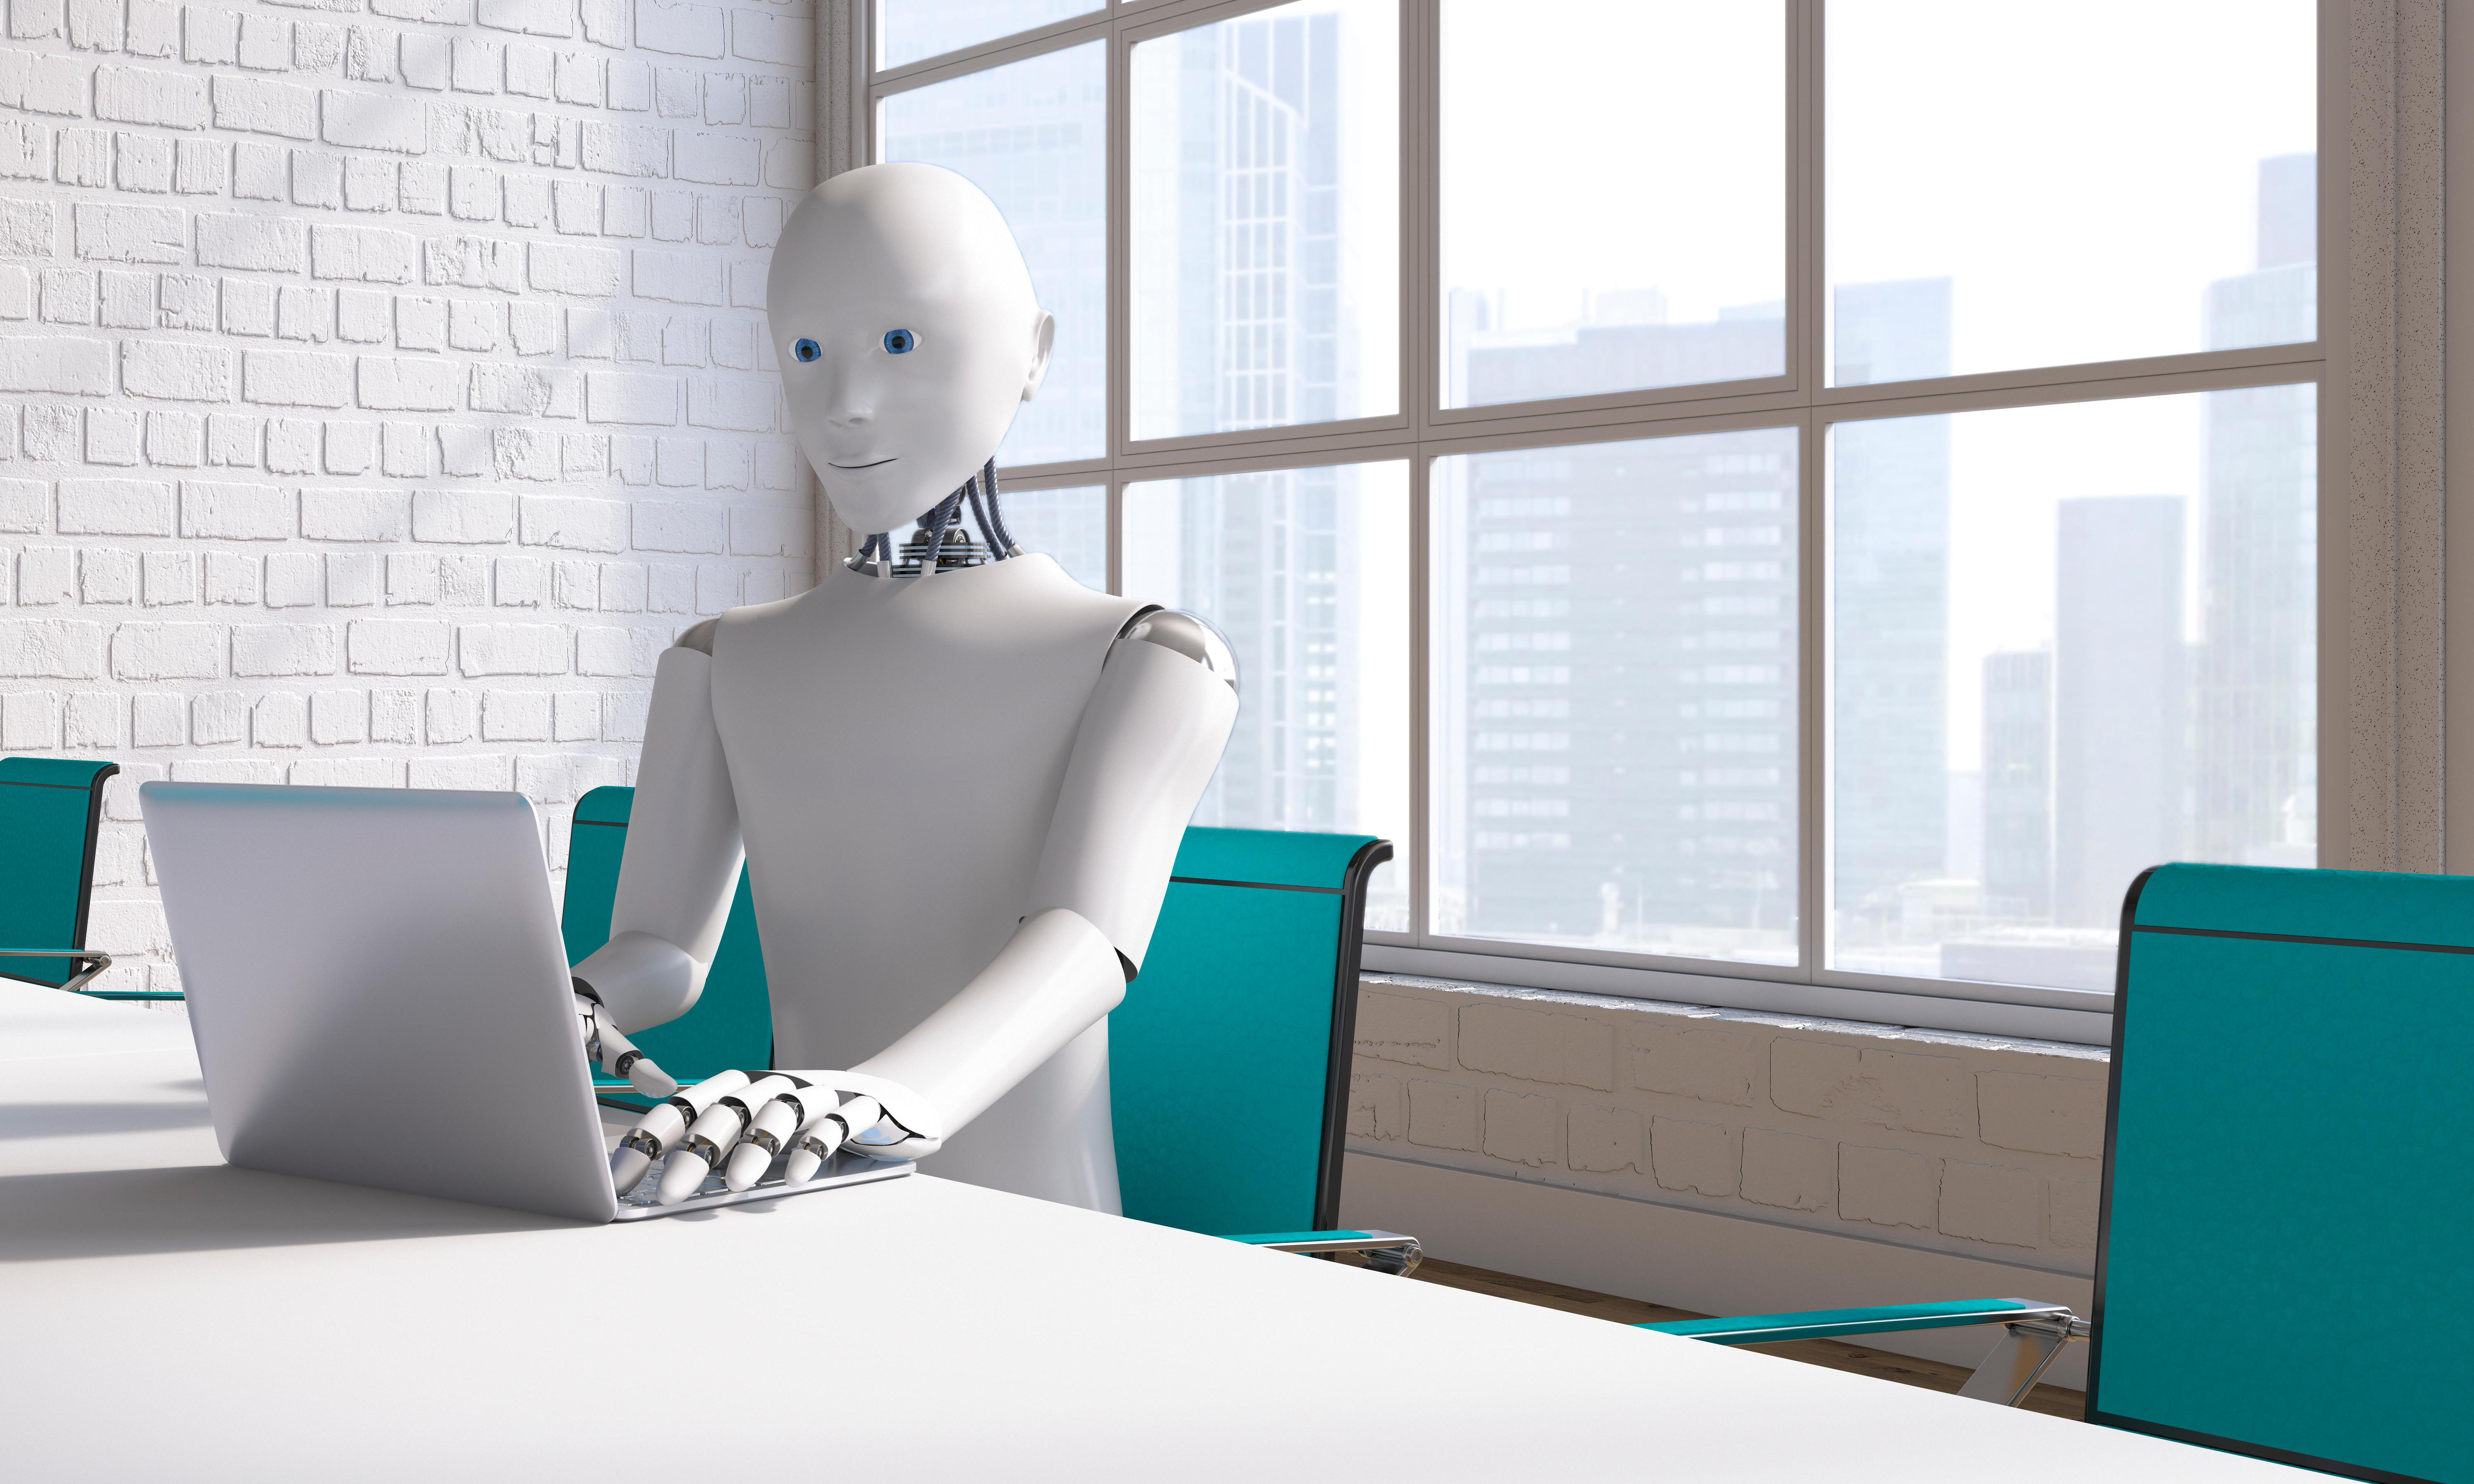 AI can write just like me. Brace for the robot apocalypse